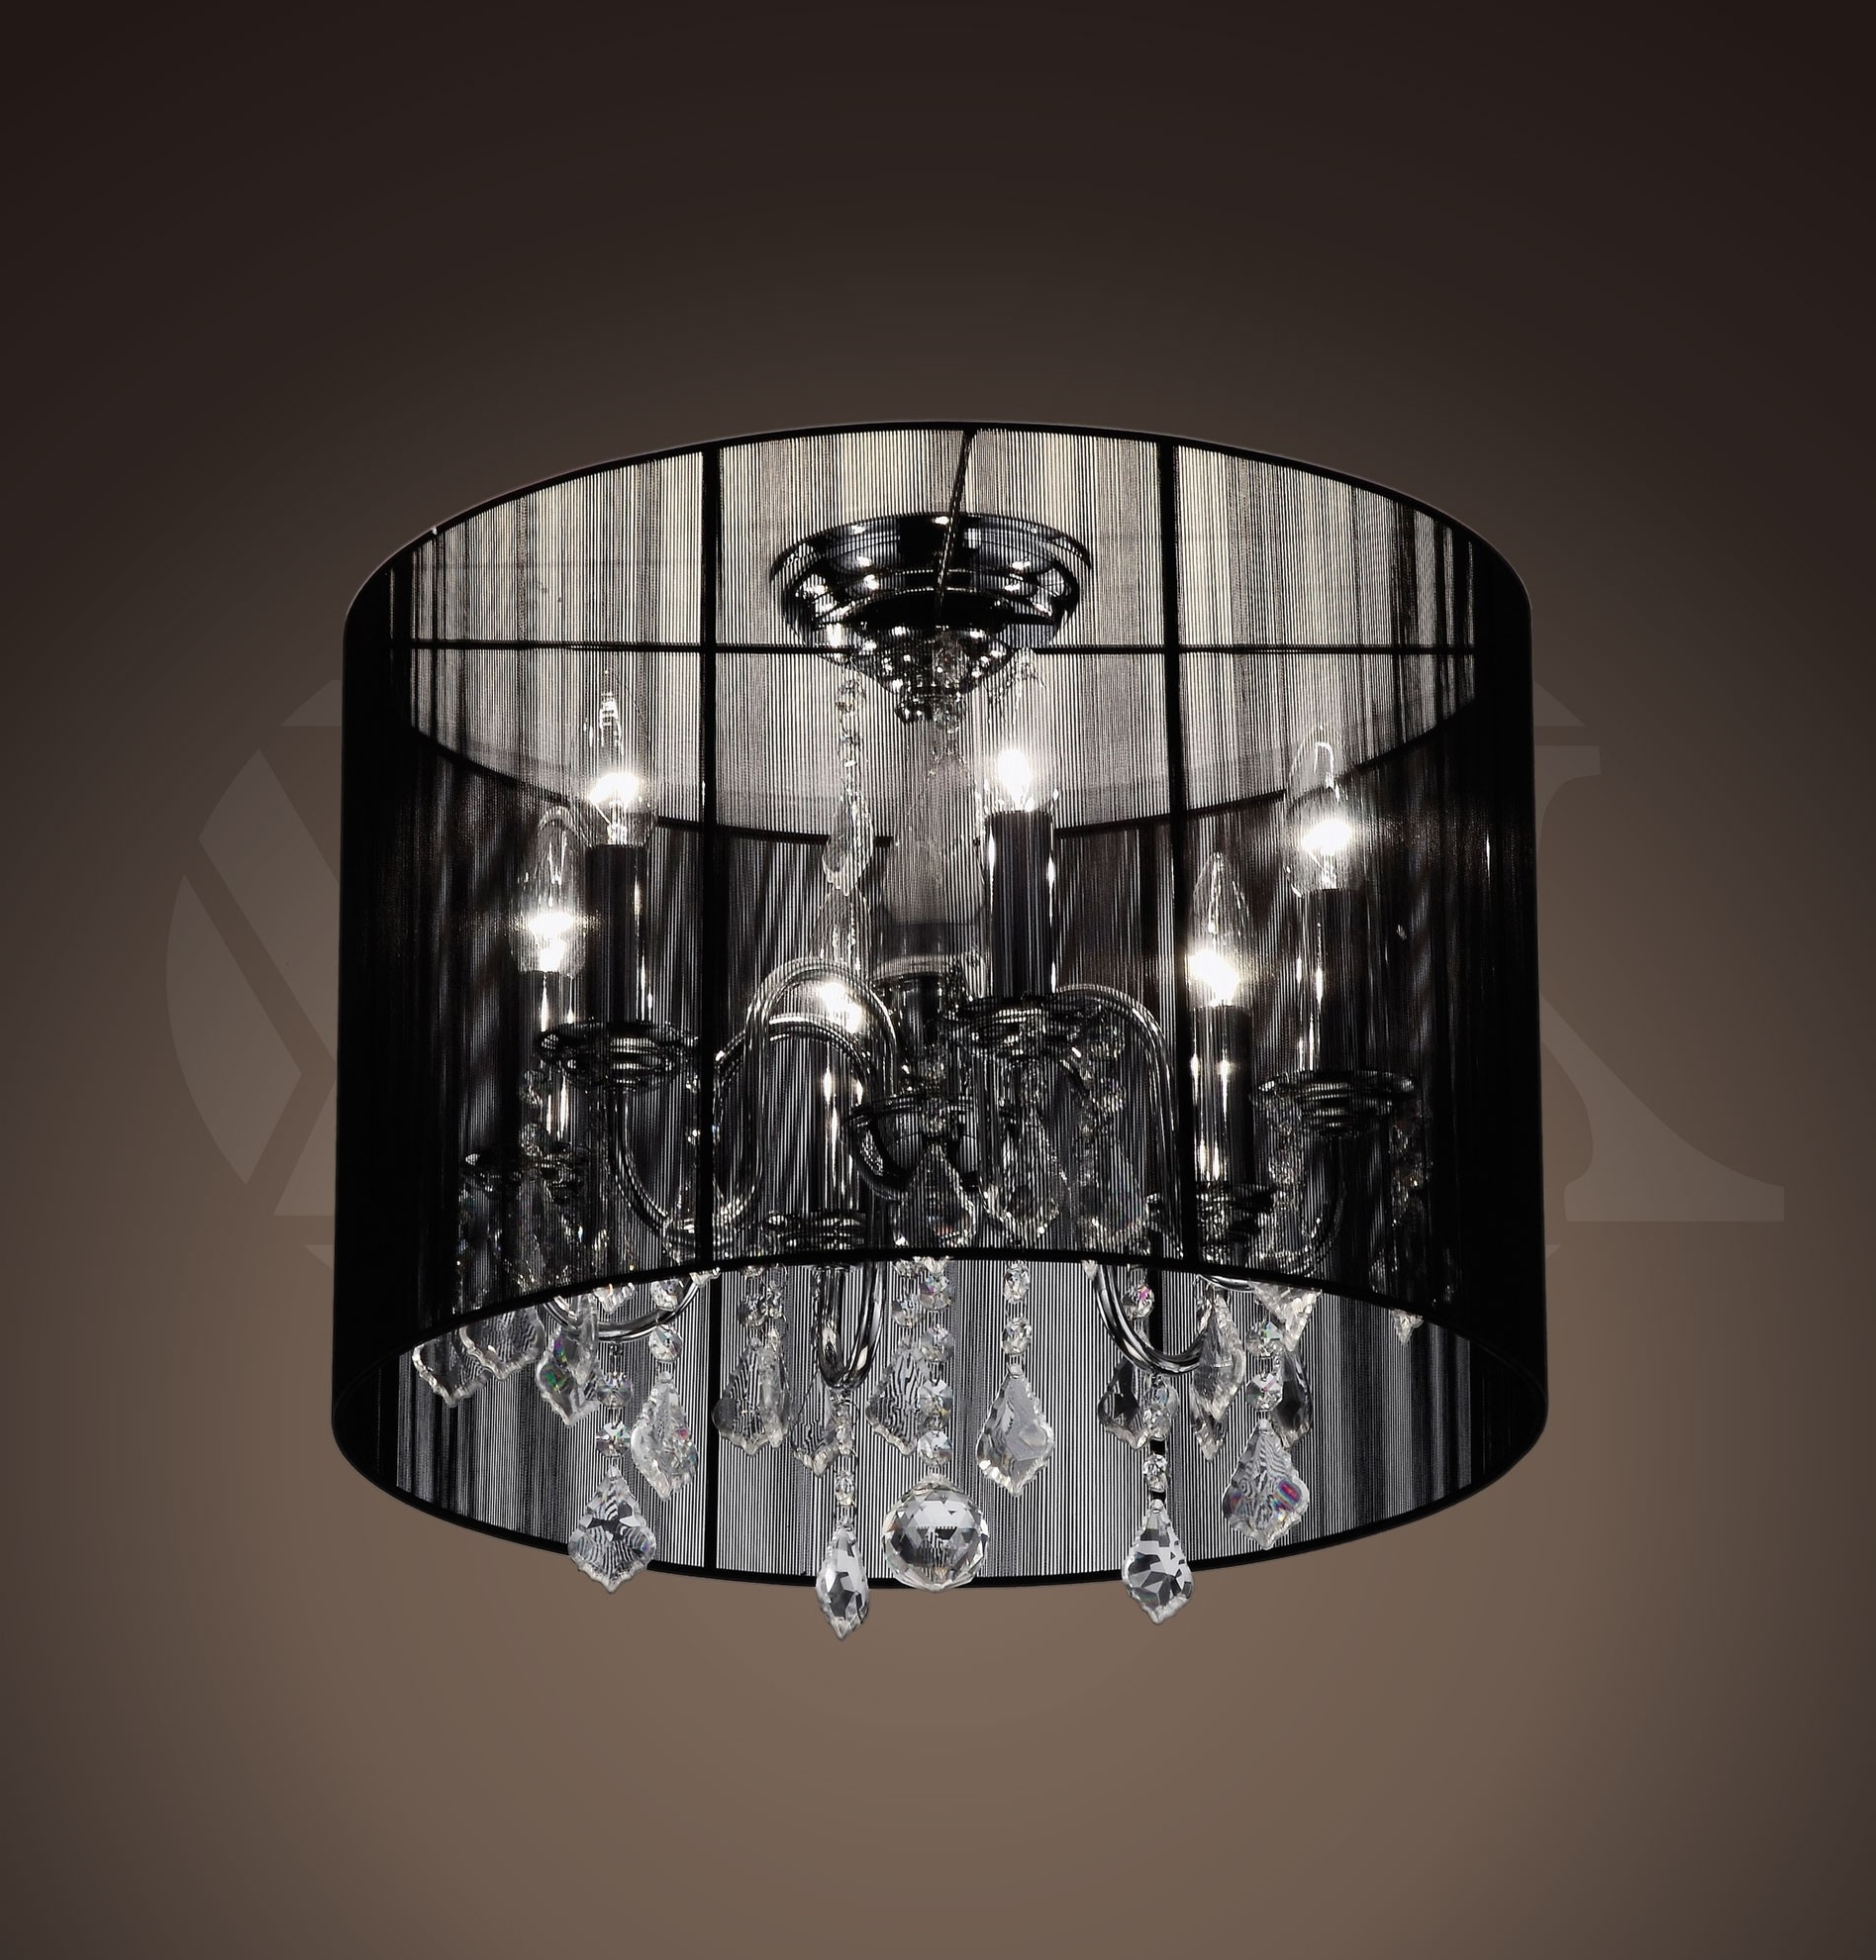 Simple Glass Chandelier Regarding Most Recent Chandeliers : Glass Chandelier Shades Fresh Chandeliers Small Black (View 10 of 15)